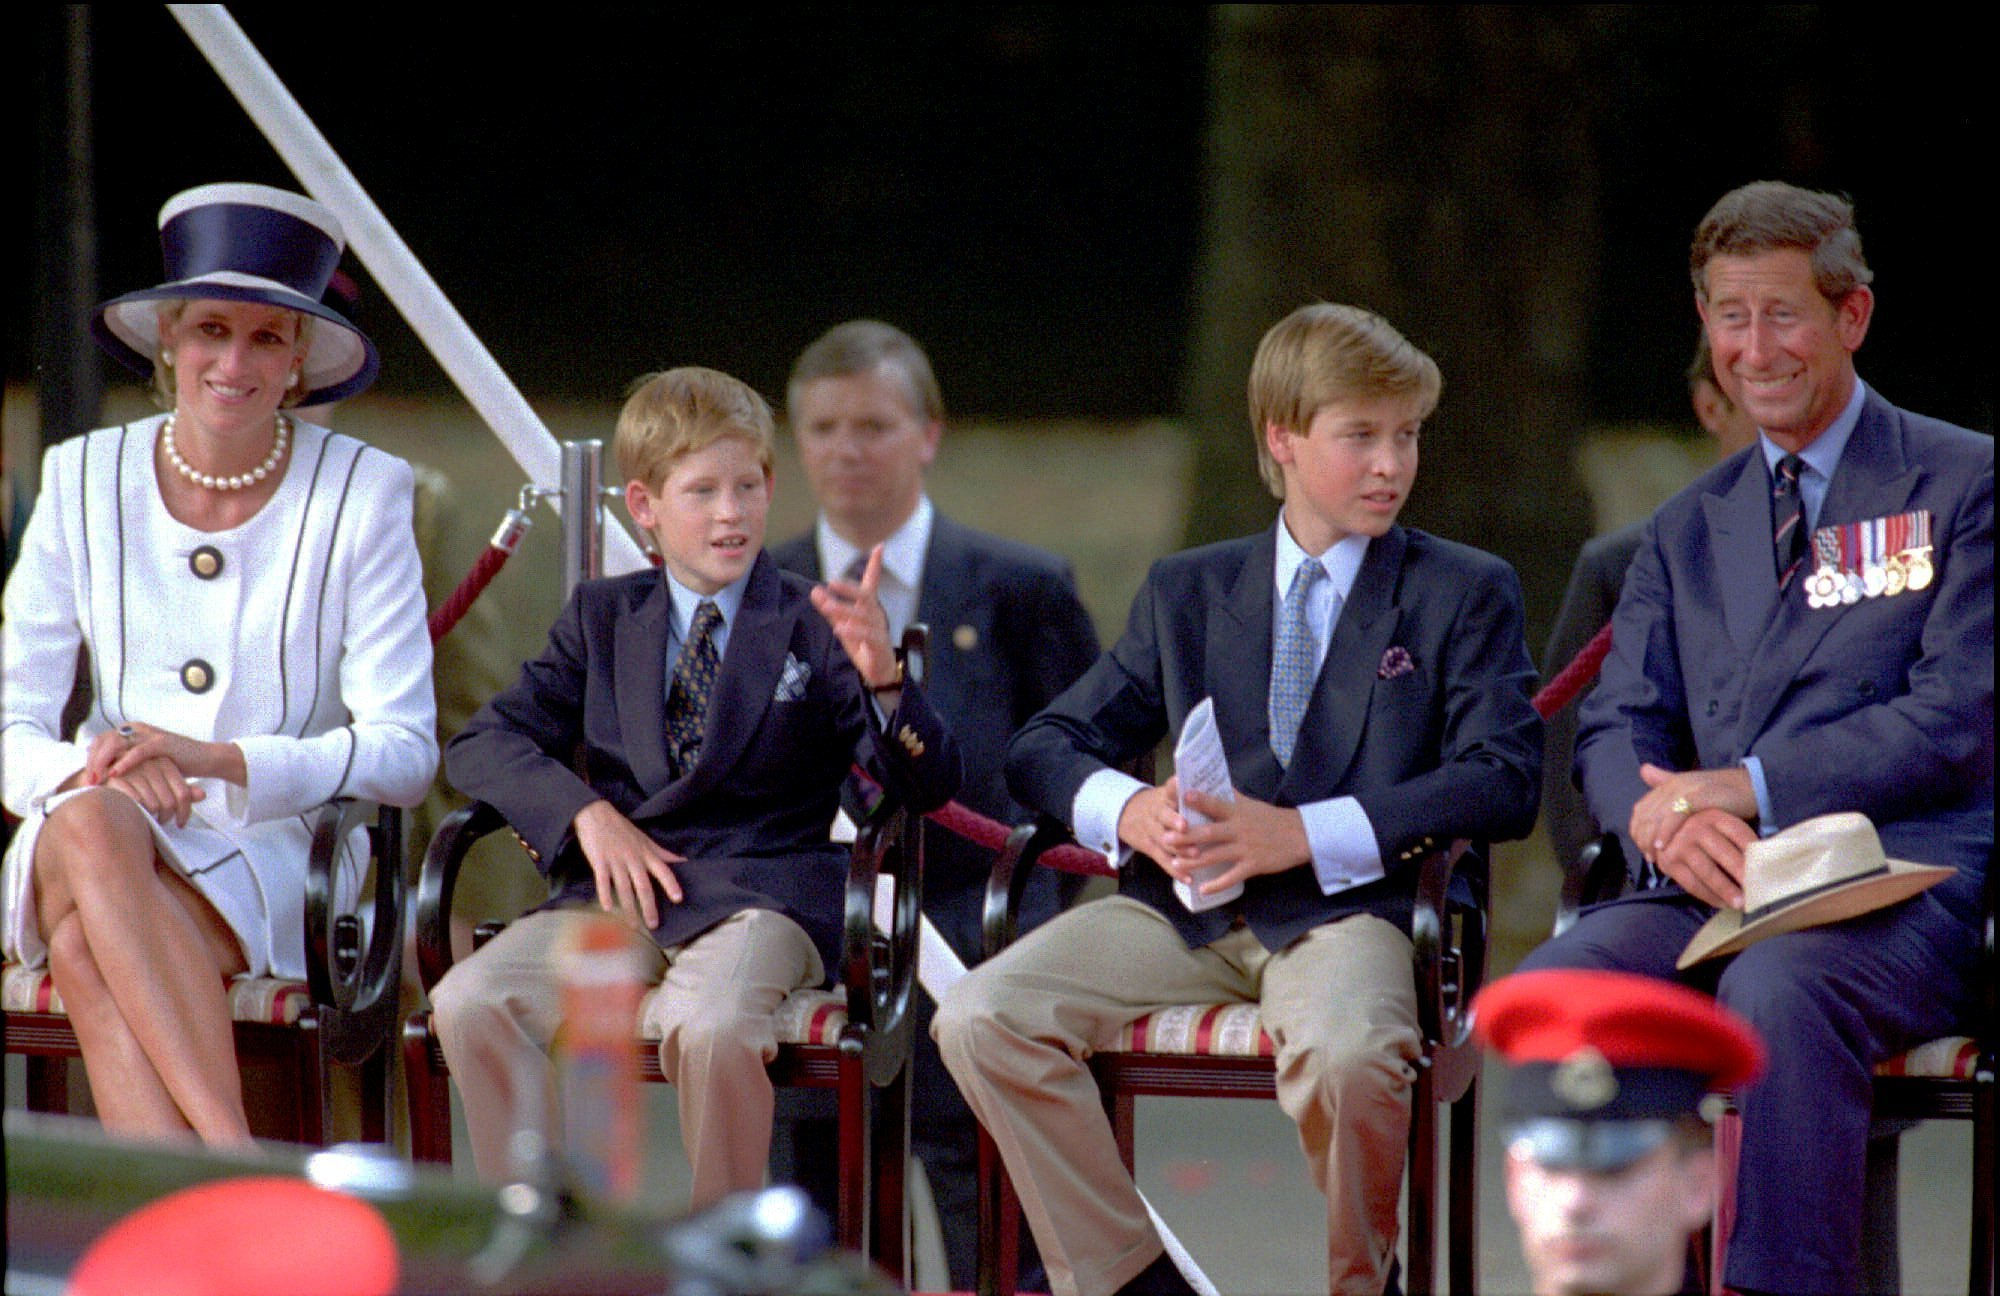 "FILE - In this Aug. 19, 1995 file photo, from left, Princess Diana, her sons Prince Harry and Prince William and Prince Charles, from left, watch a veteran's parade during the 50th anniversary of VJ Day commemorations in London. It has been 20 years since the death of Princess Diana in a car crash in Paris and the outpouring of grief that followed the death of the ""people's princess.""  (AP Photo/Alastair Grant, File)"